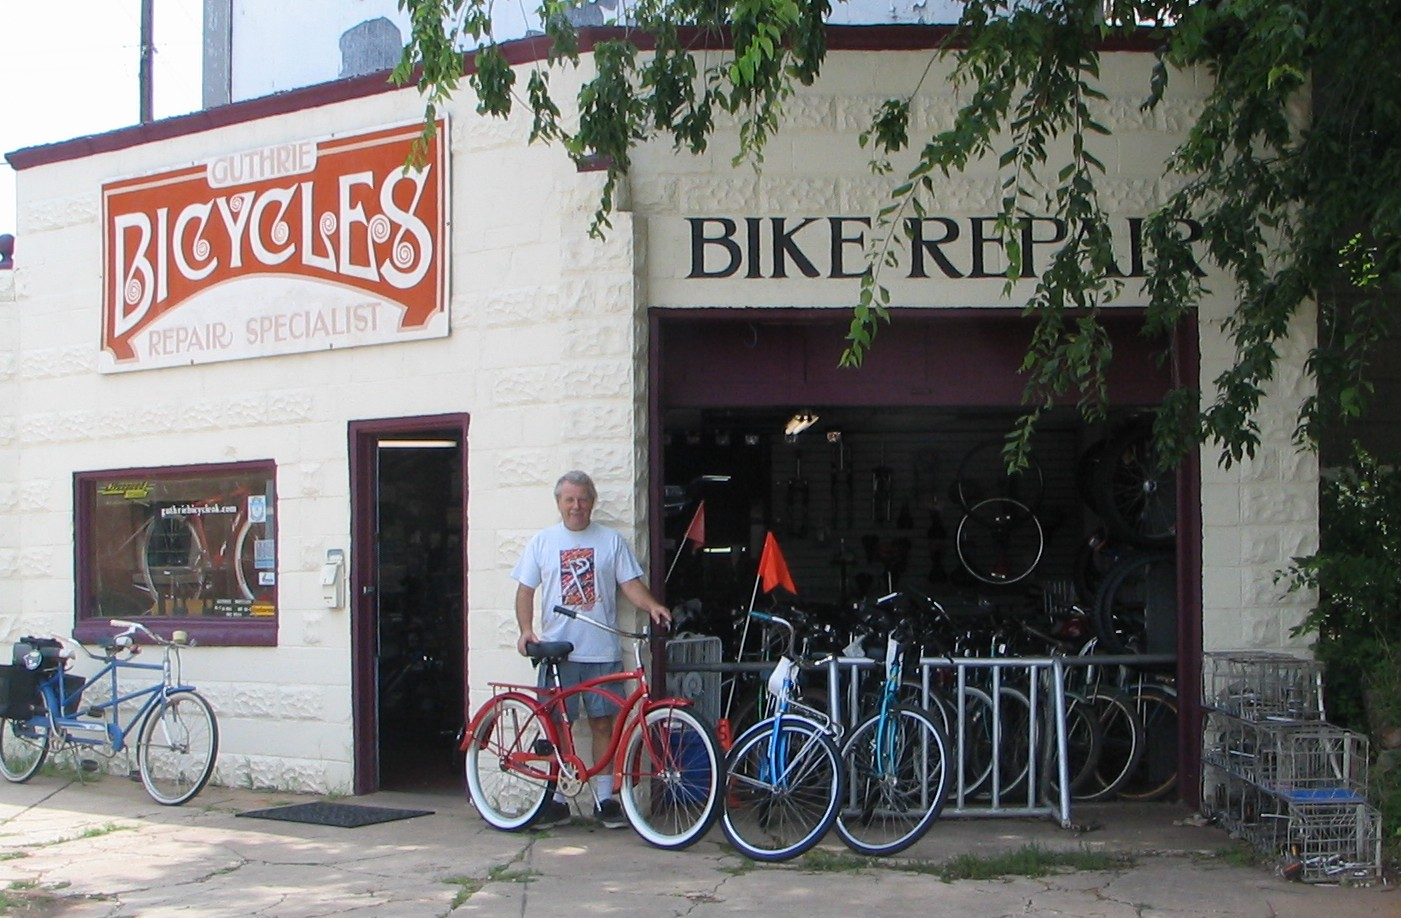 Guthrie Bicycle Shop